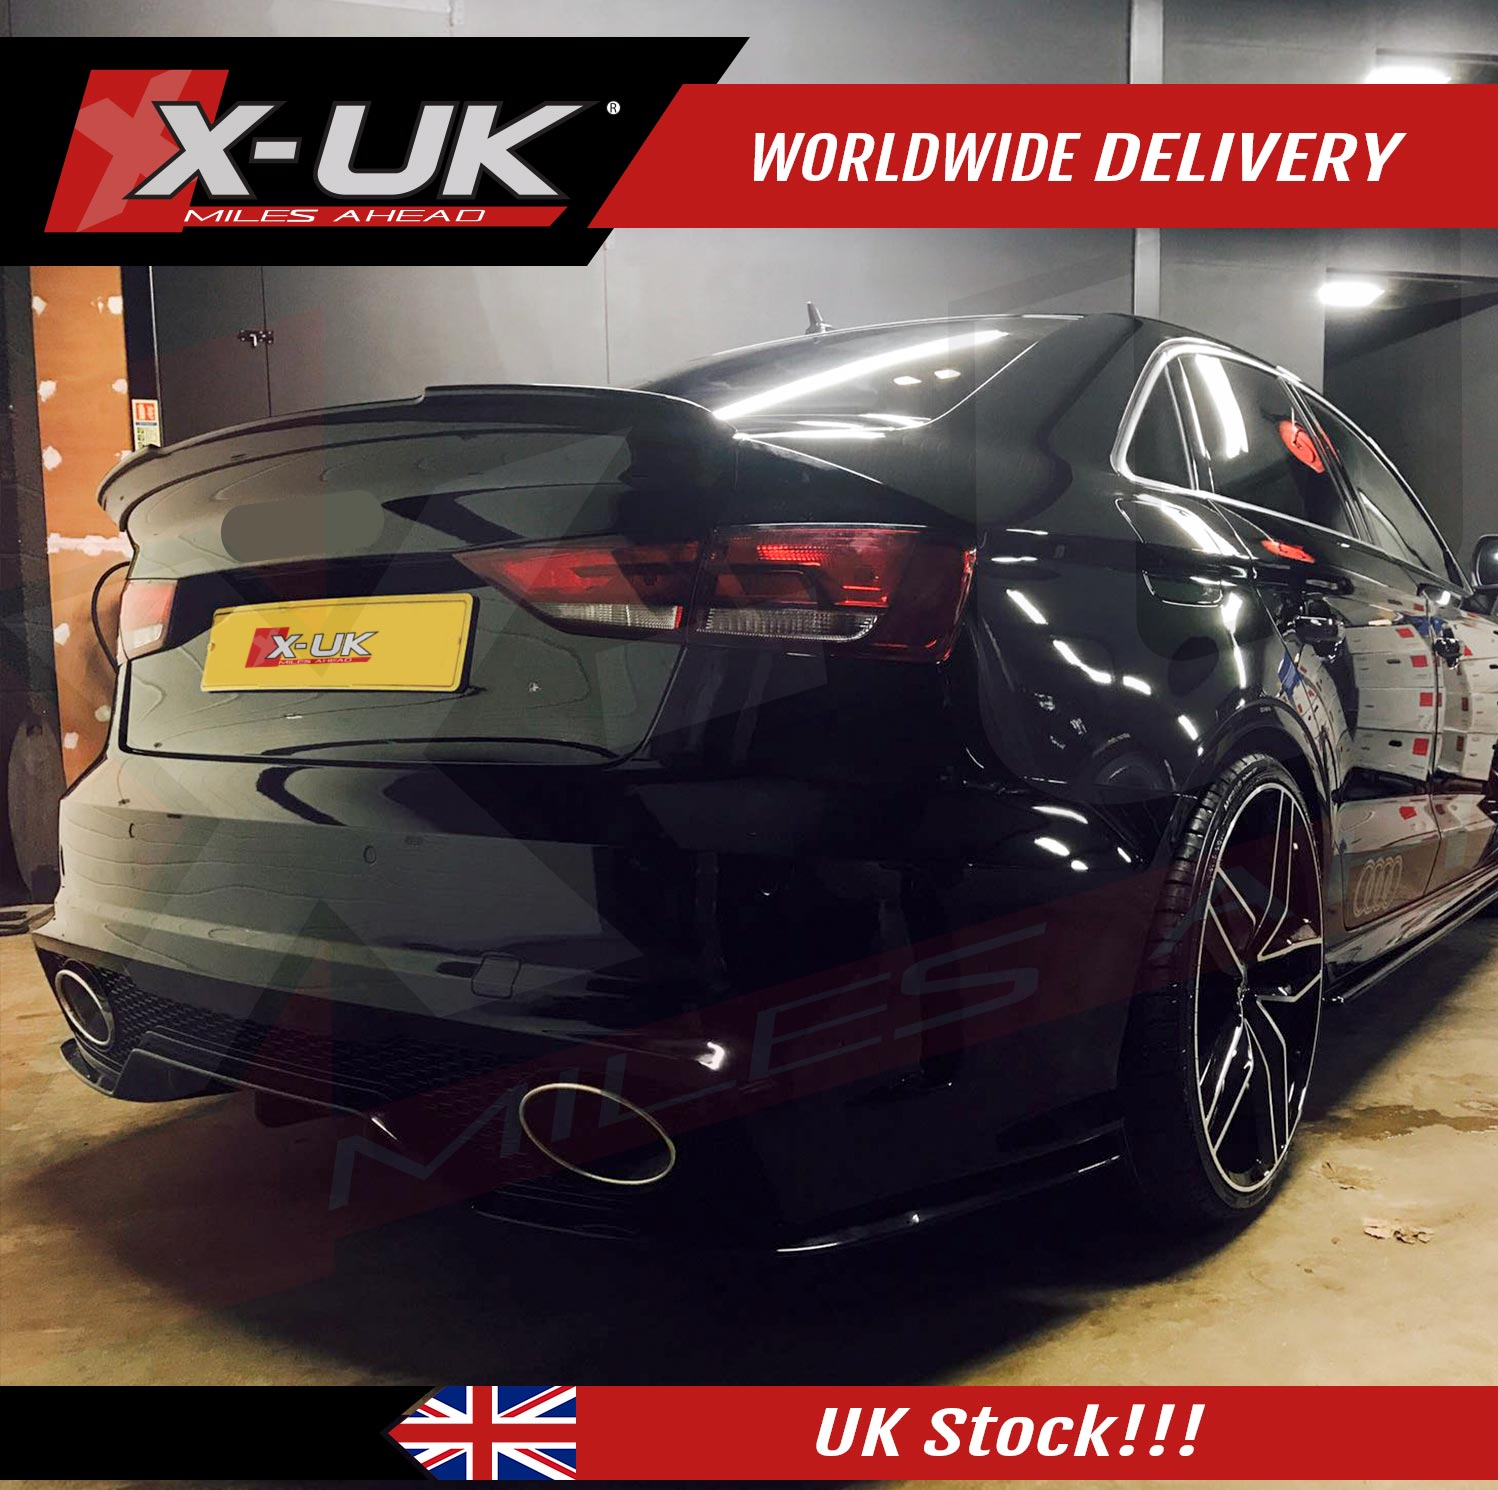 Club sport style body kit conversion for AUDI A3 / S3 8V